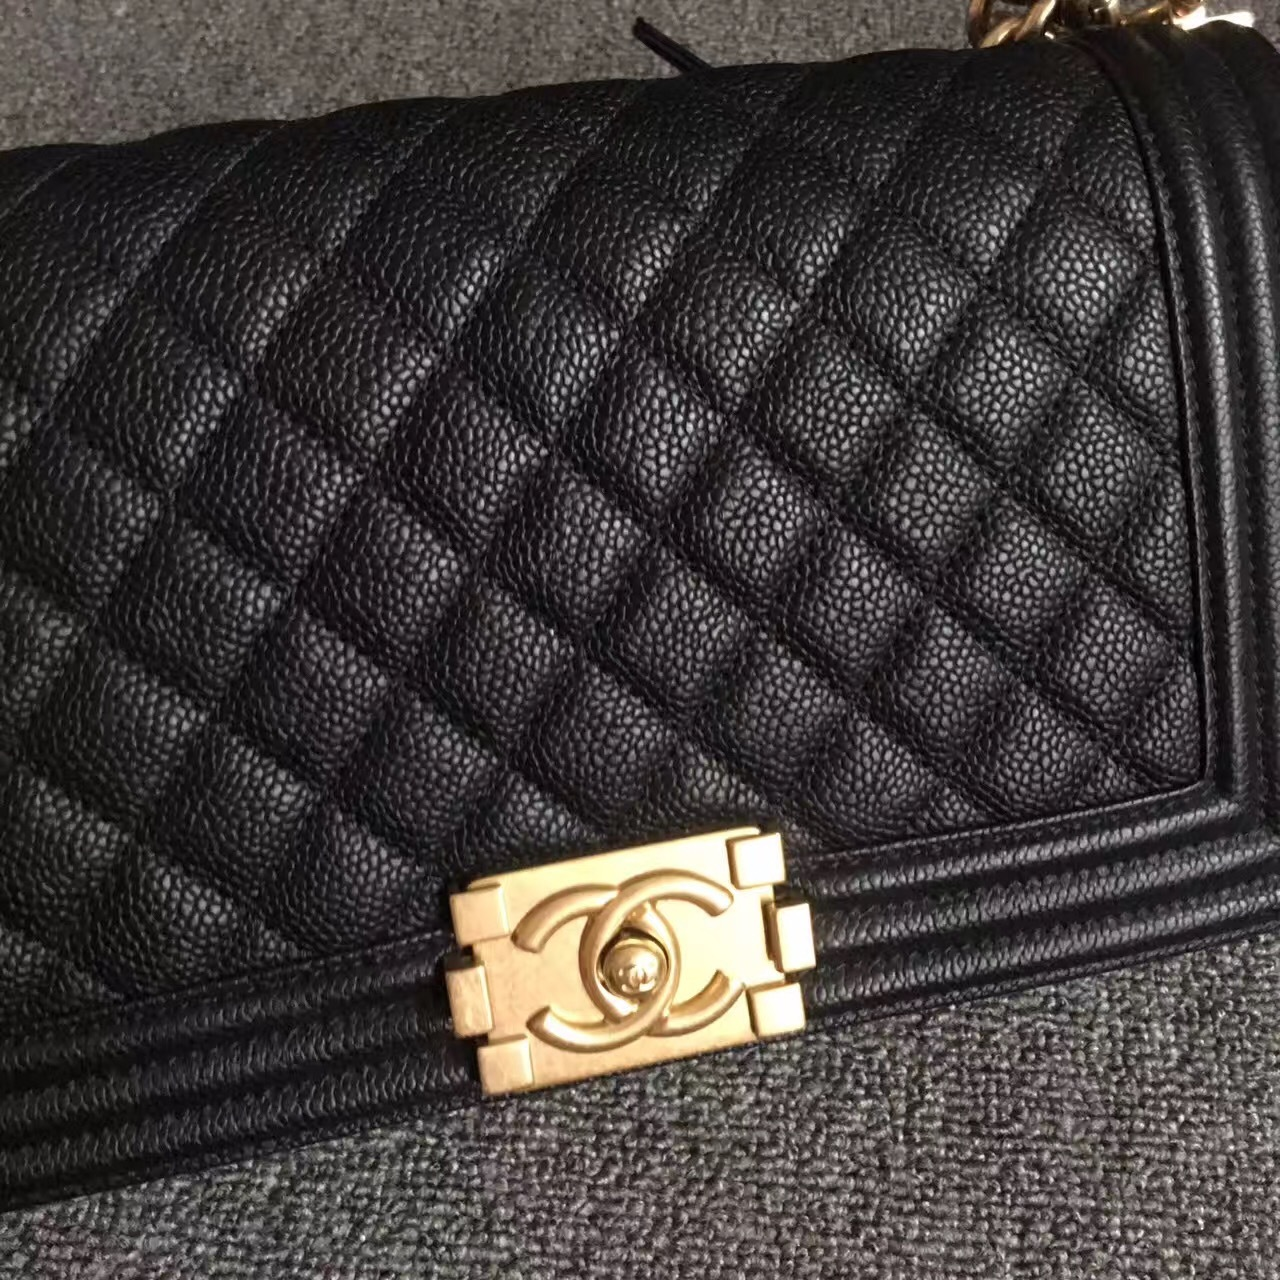 AUTHENTIC NEW CHANEL 2017 LE BOY BLACK CAVIAR MEDIUM FLAP BAG GHW RARE